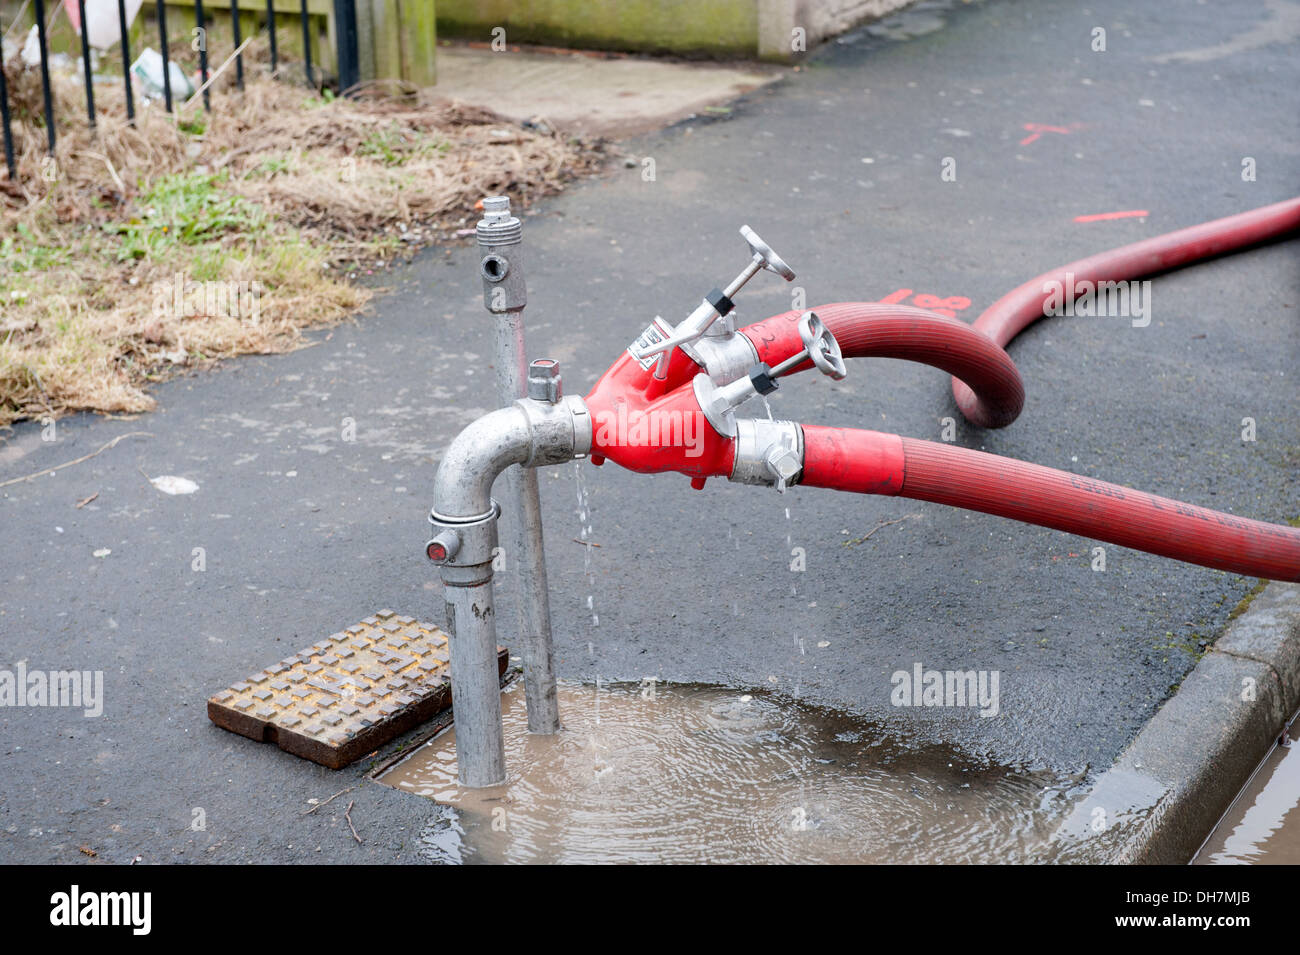 Hydrant Fire Standpipe dividing branch divider 2 - Stock Image